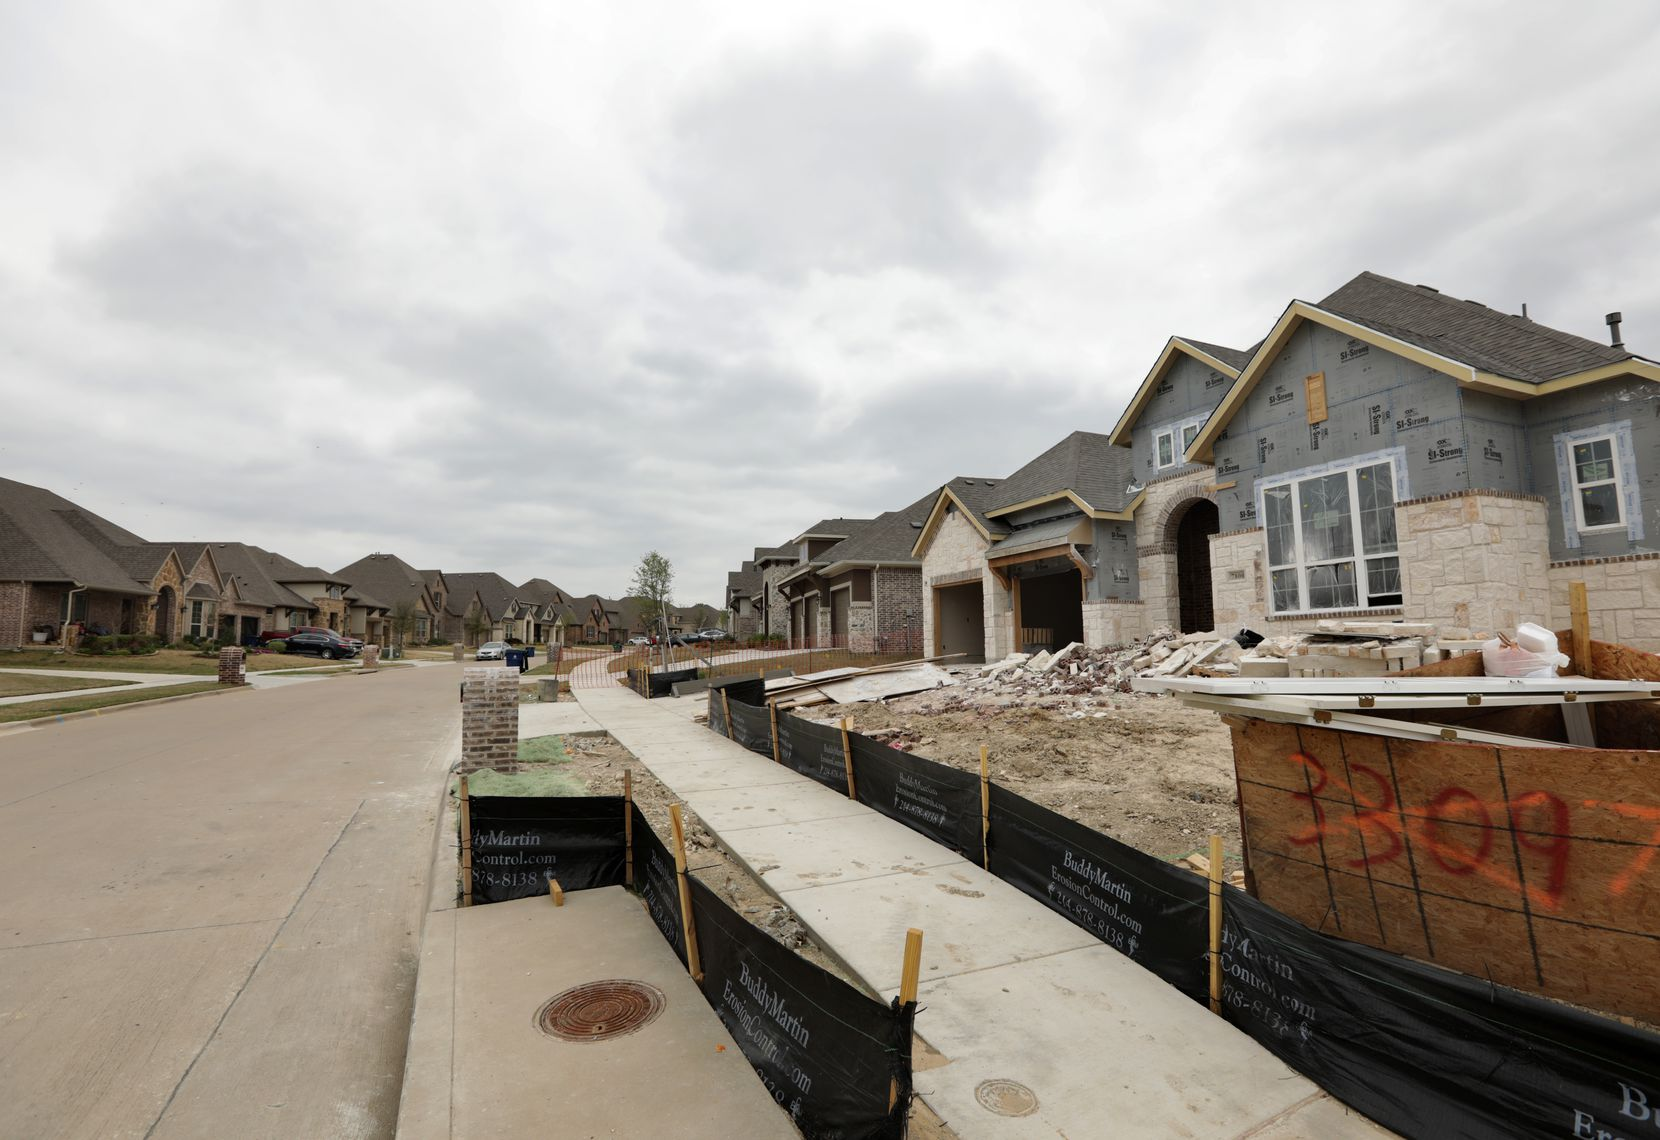 Plans for the Trinity Falls community north of McKinney call for 5,000 homes.